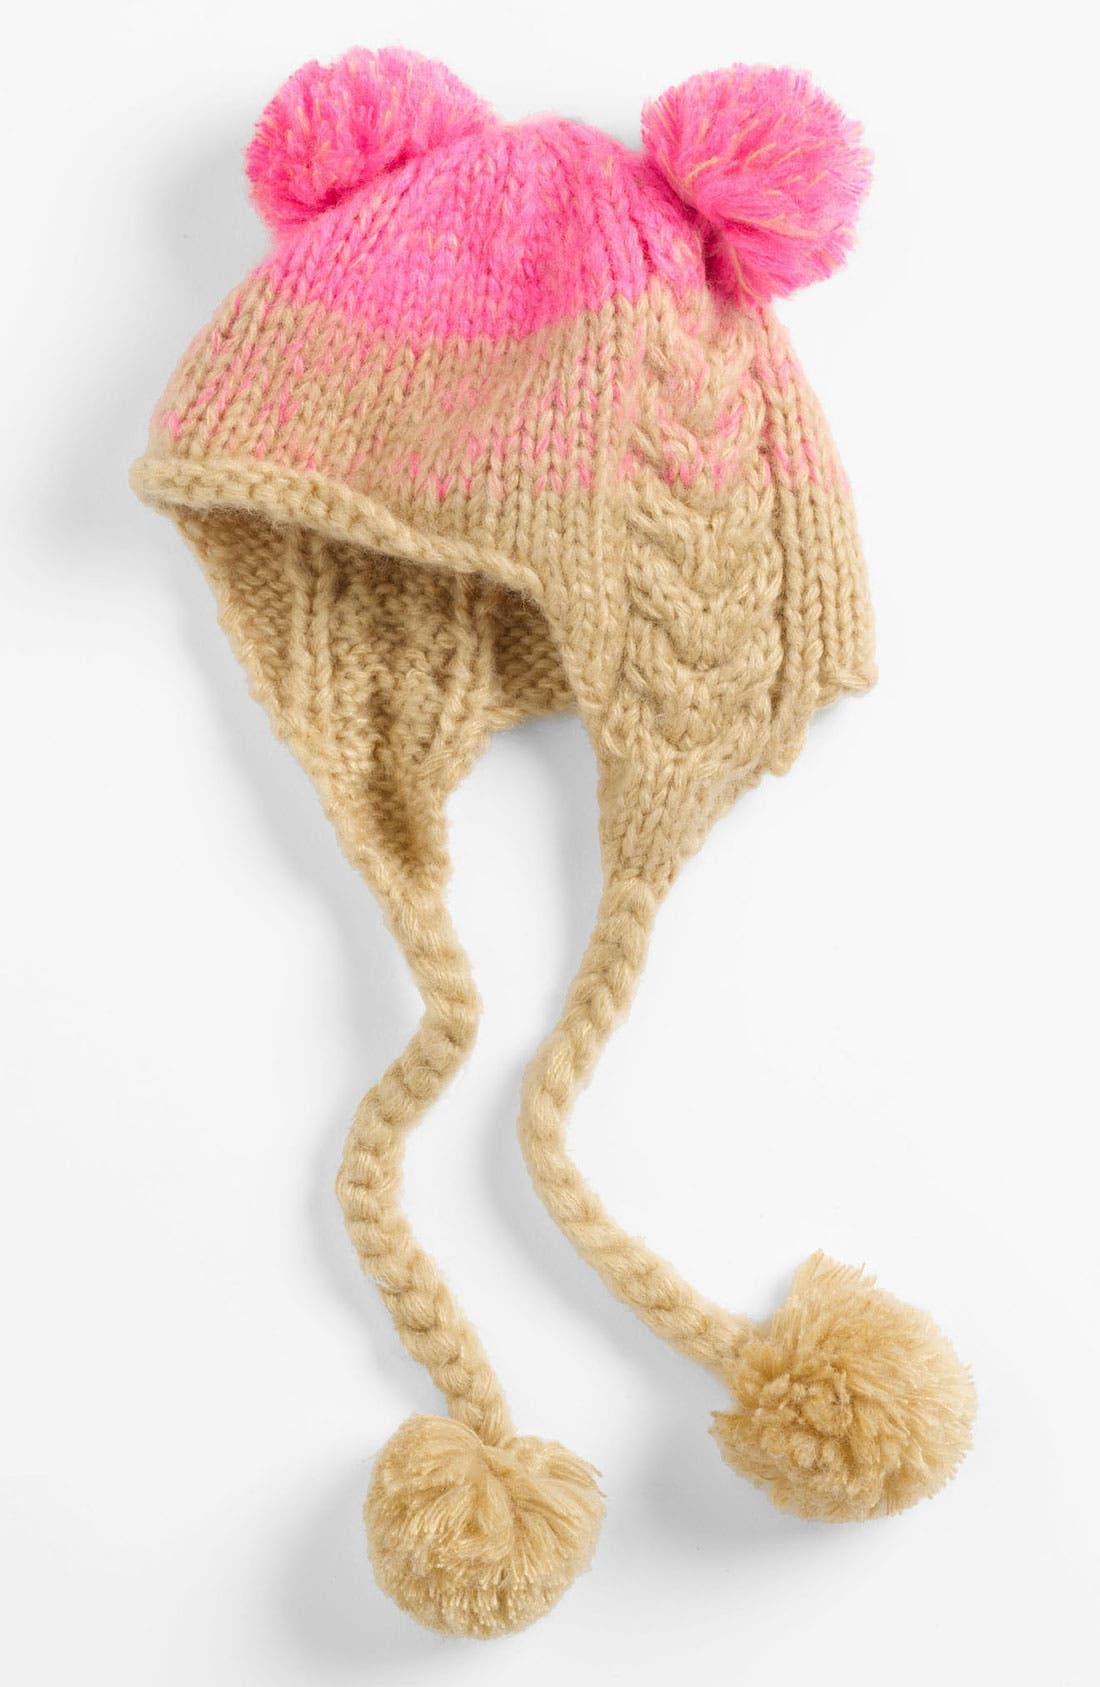 Main Image - Peace of Cake 'Pigtail' Hat (Girls)